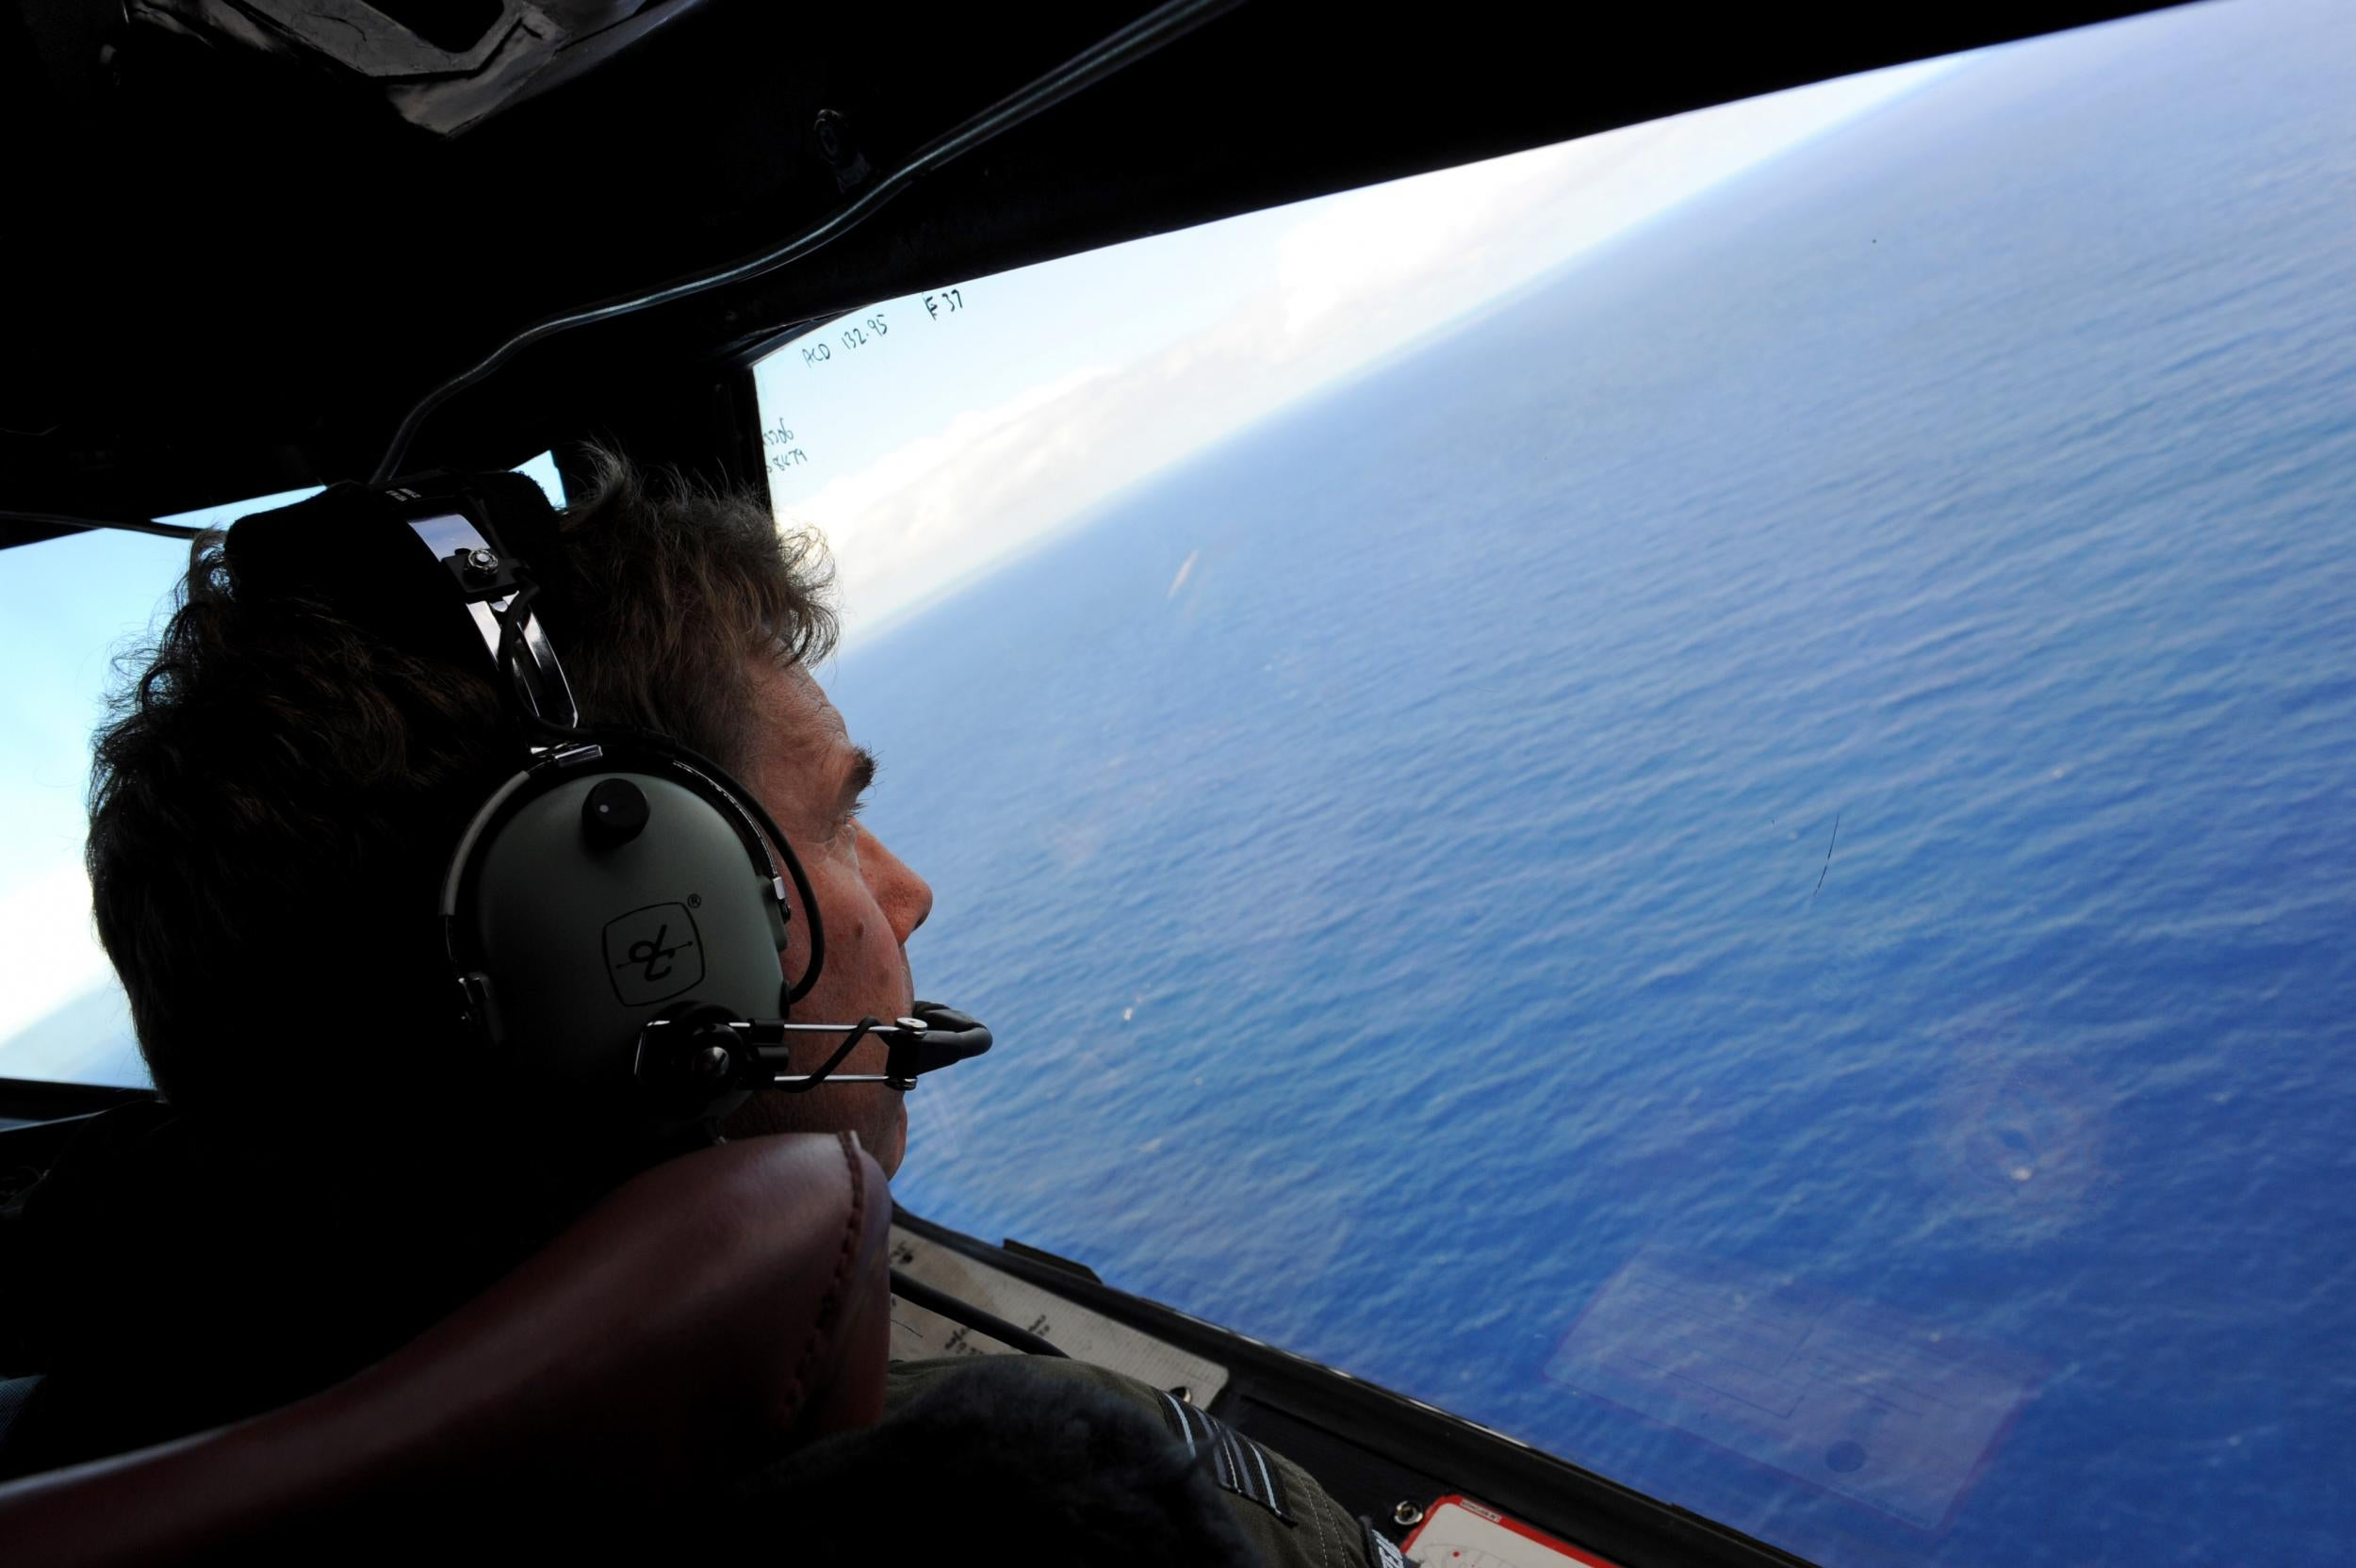 MH370: 'Unlikely' Malaysia Airlines pilot was conscious at moment plane crashed into ocean, says investigator